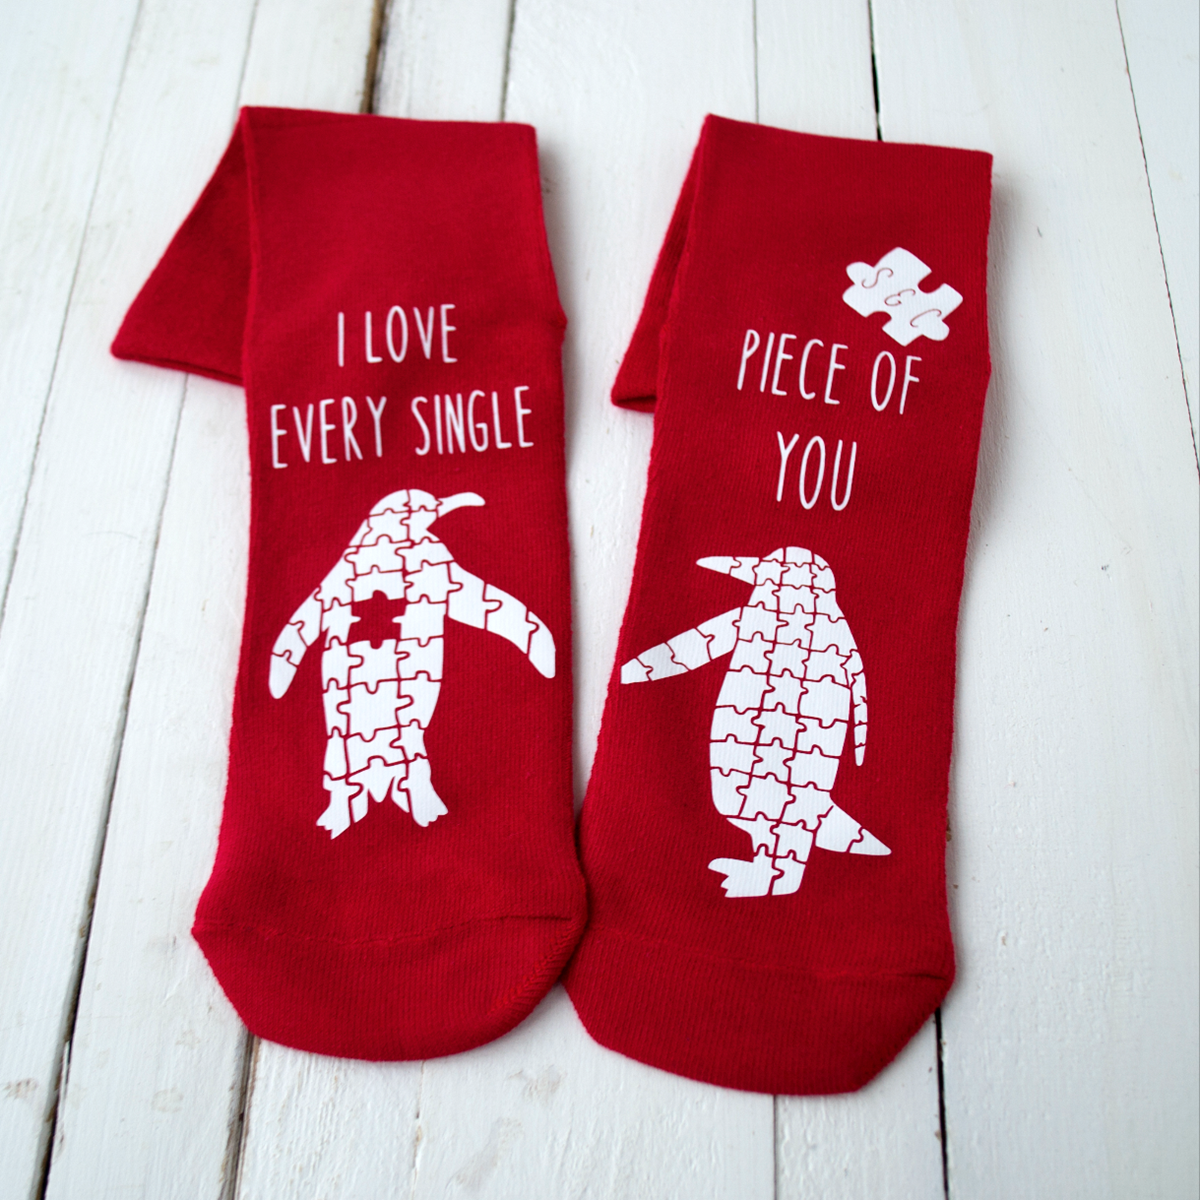 Birthday gift ideas unusual presents the present finder personalised love you to pieces socks negle Choice Image